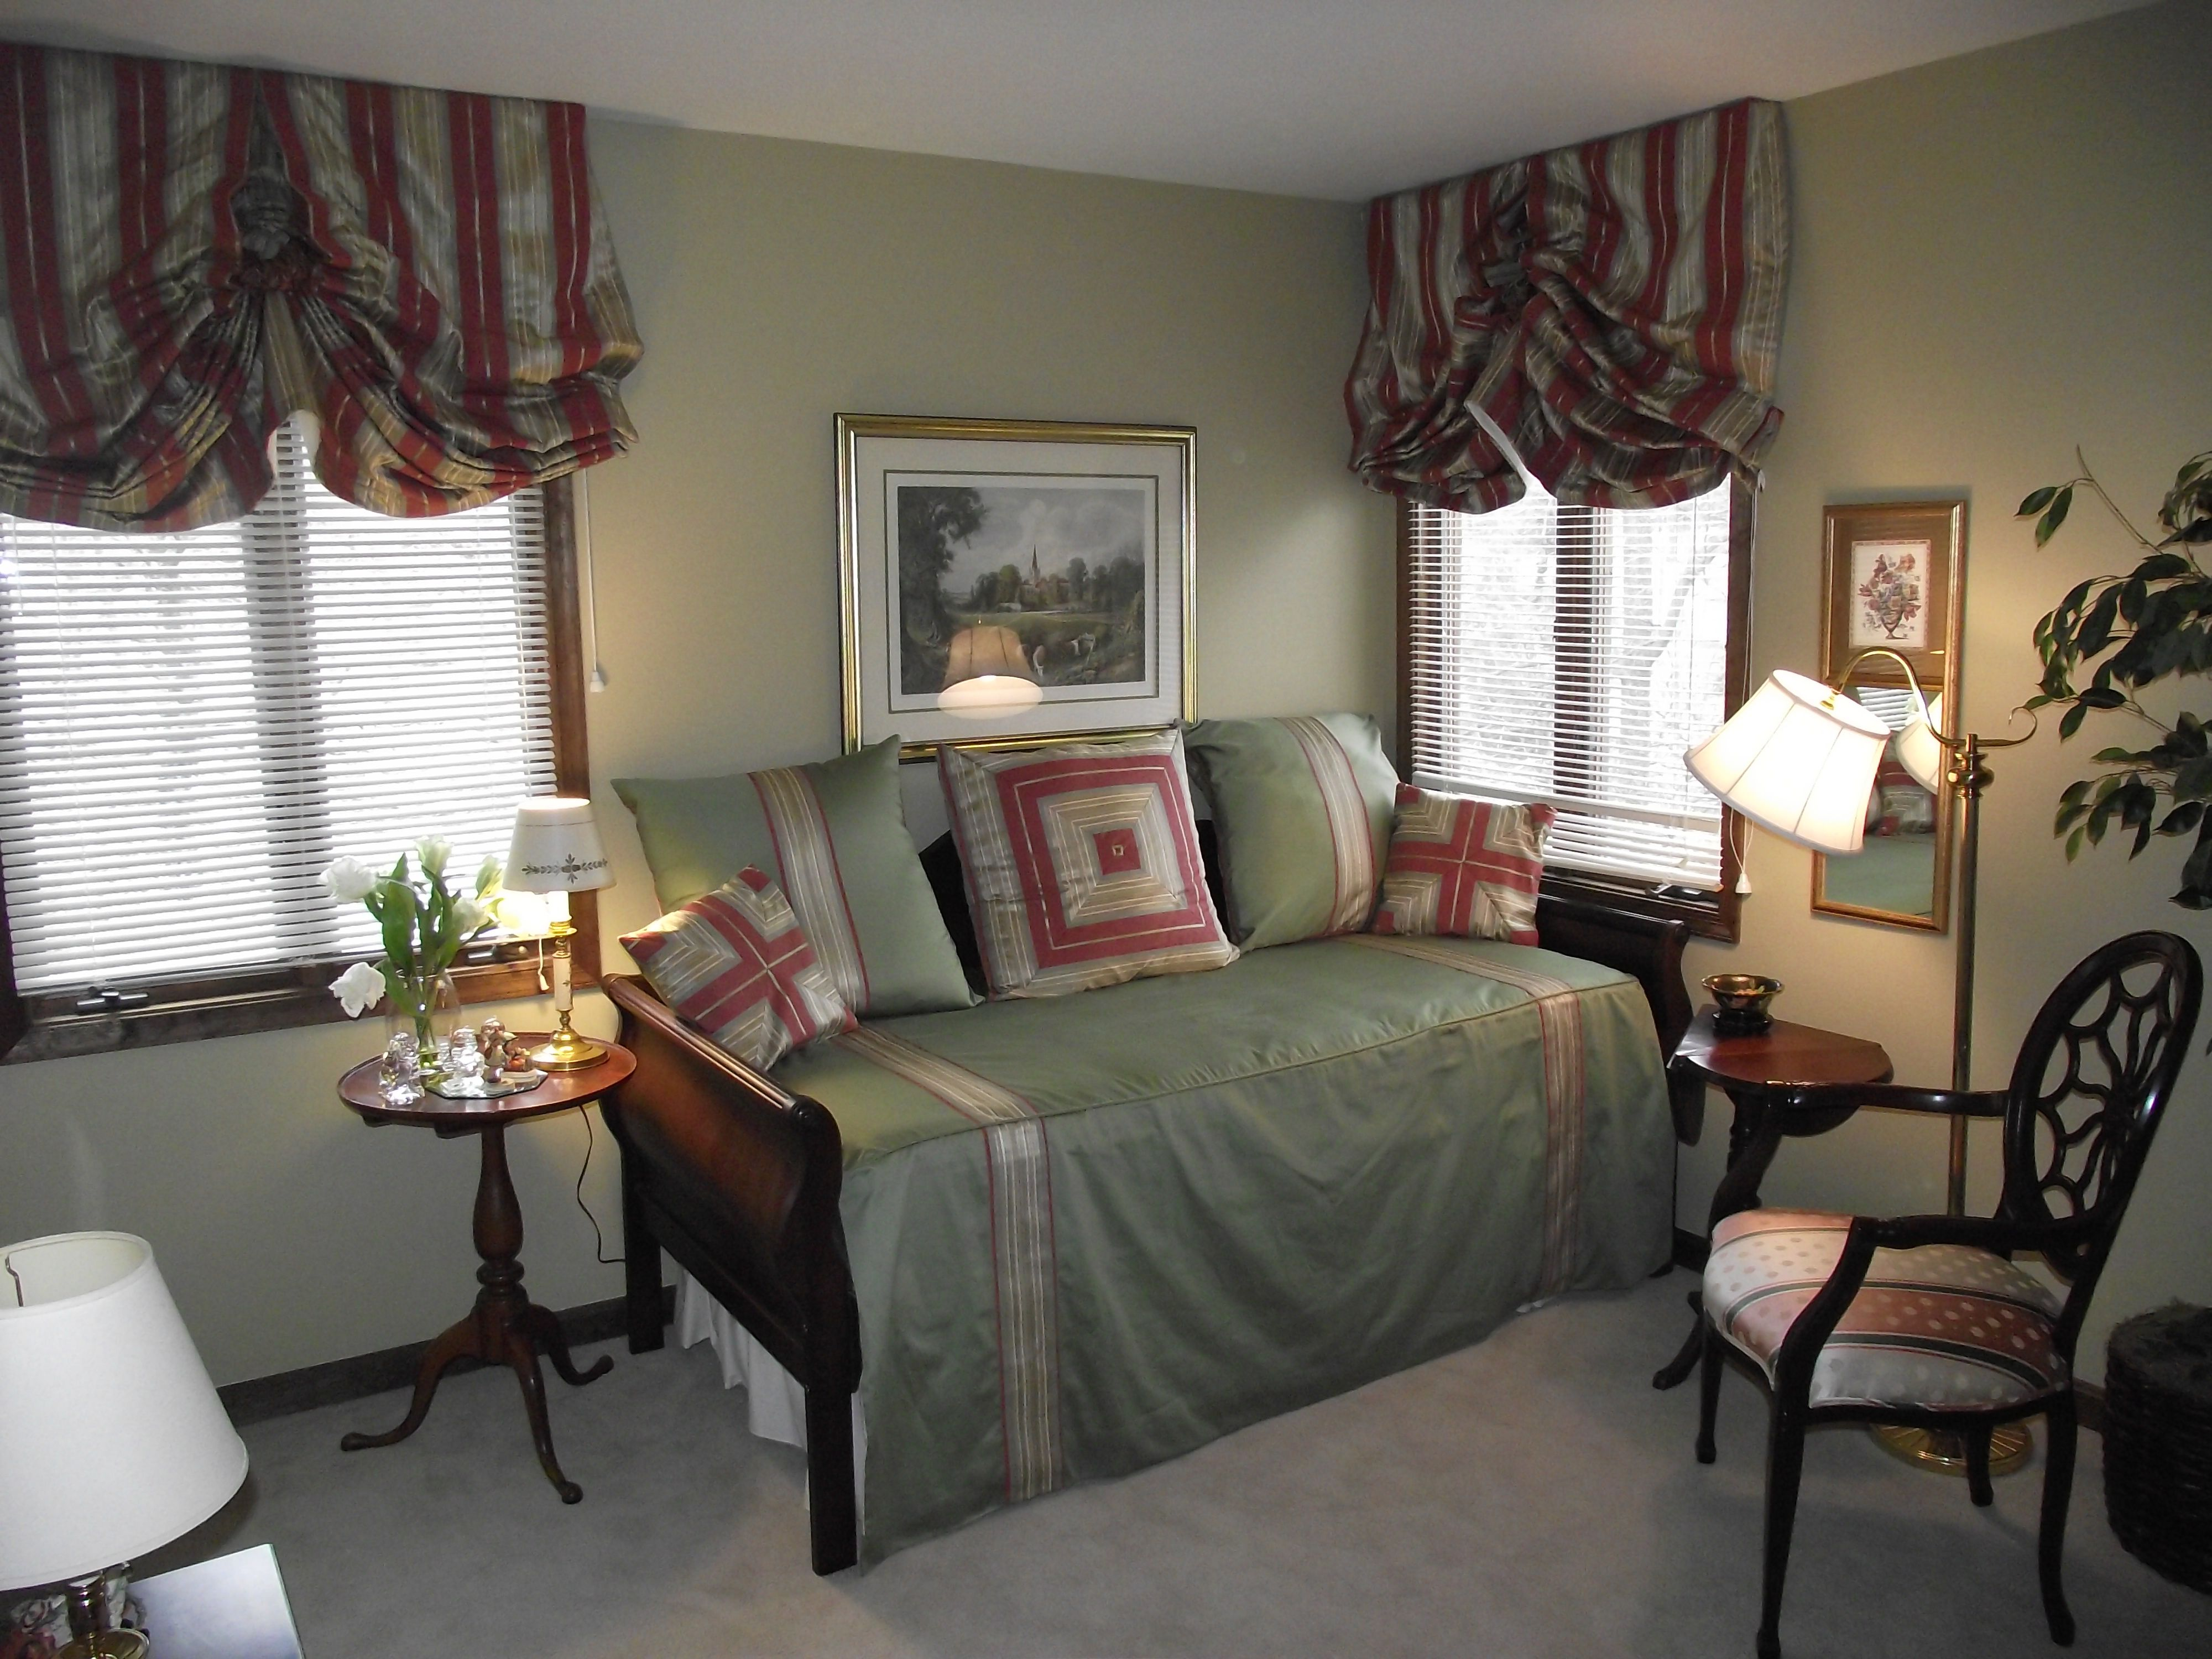 Outside window treatment ideas  redesigned guest room  notice that the day bed cover and outside